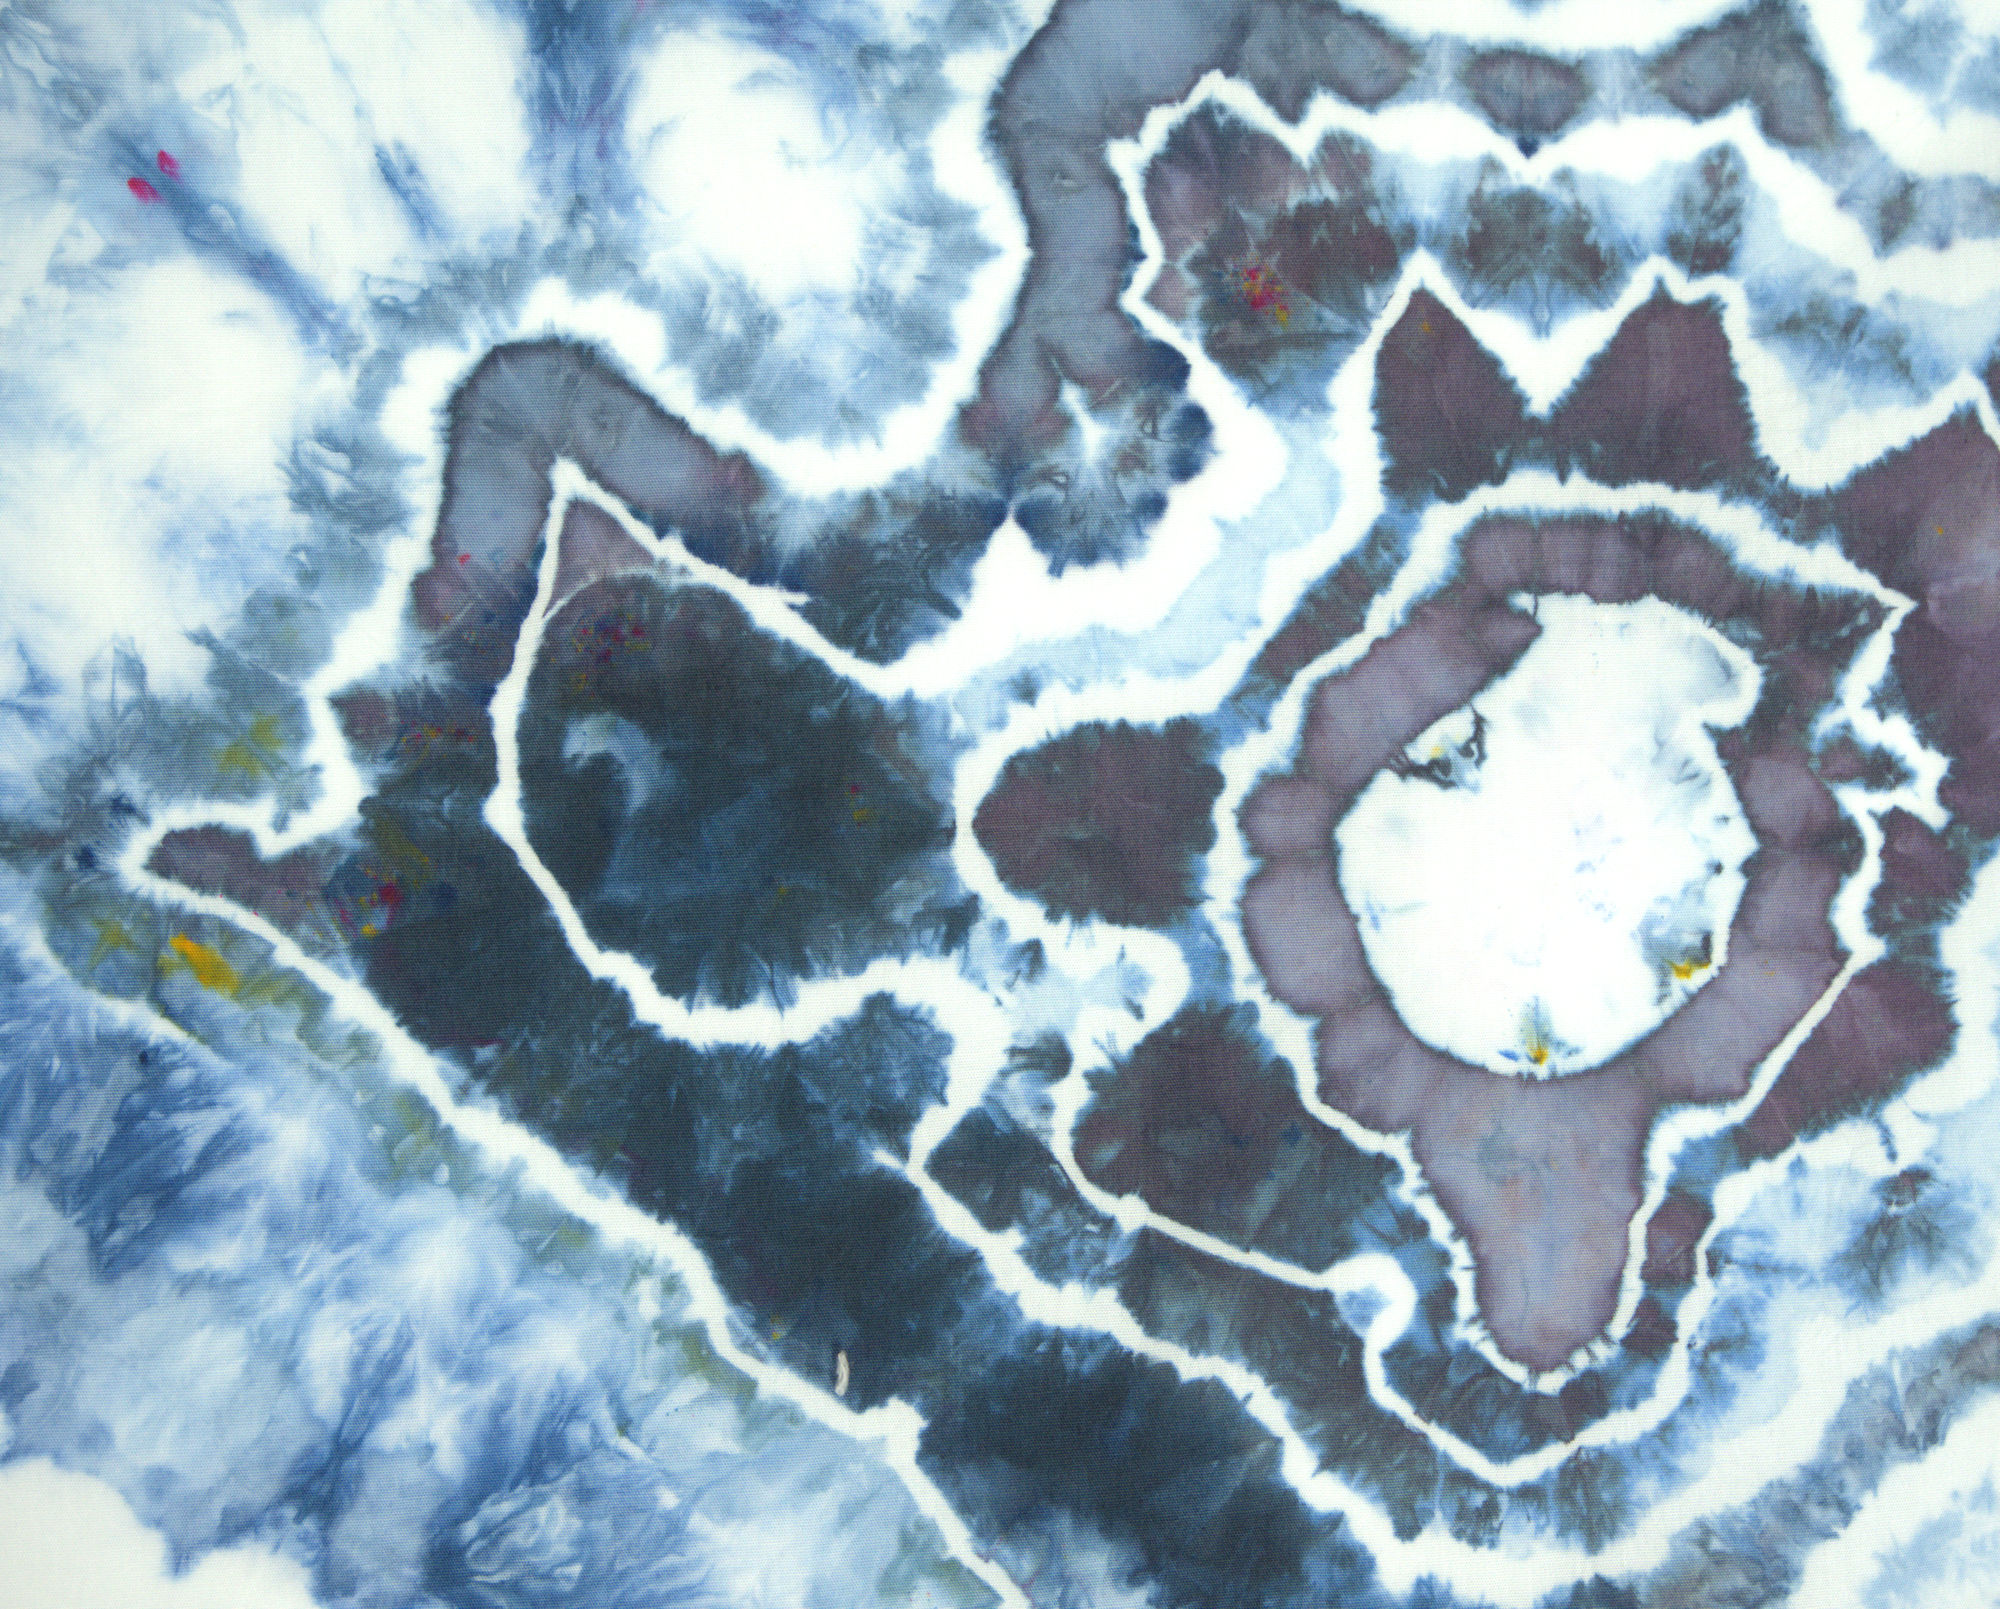 Blue and gray geode detail